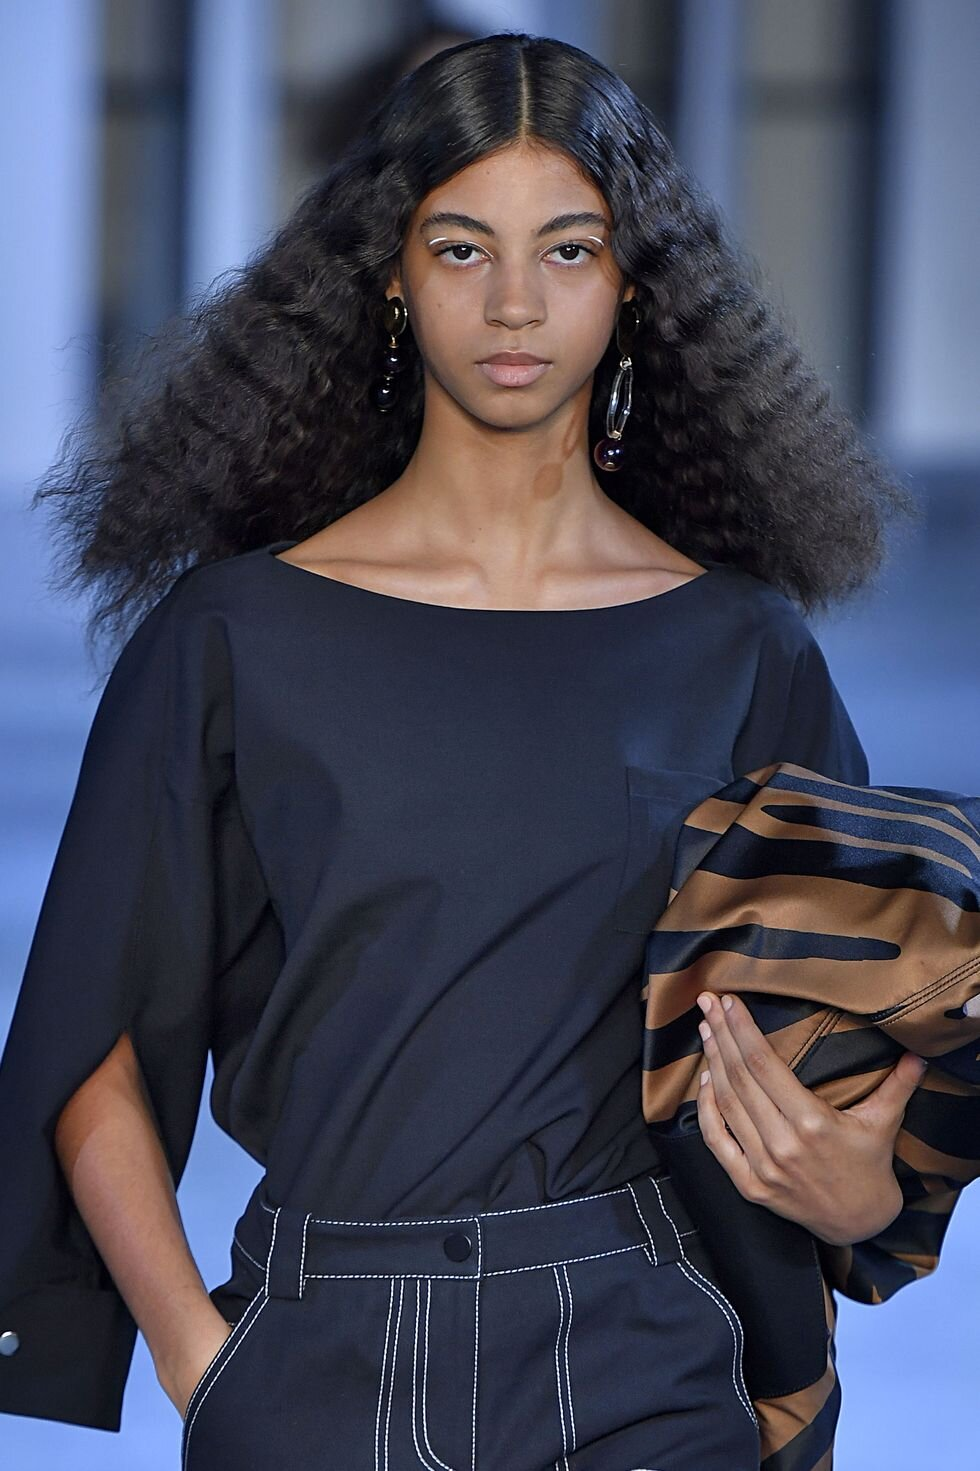 model-walks-the-runway-at-the-3-1-phillip-lim-ready-to-wear-news-photo-1129089590-1567007709.jpg